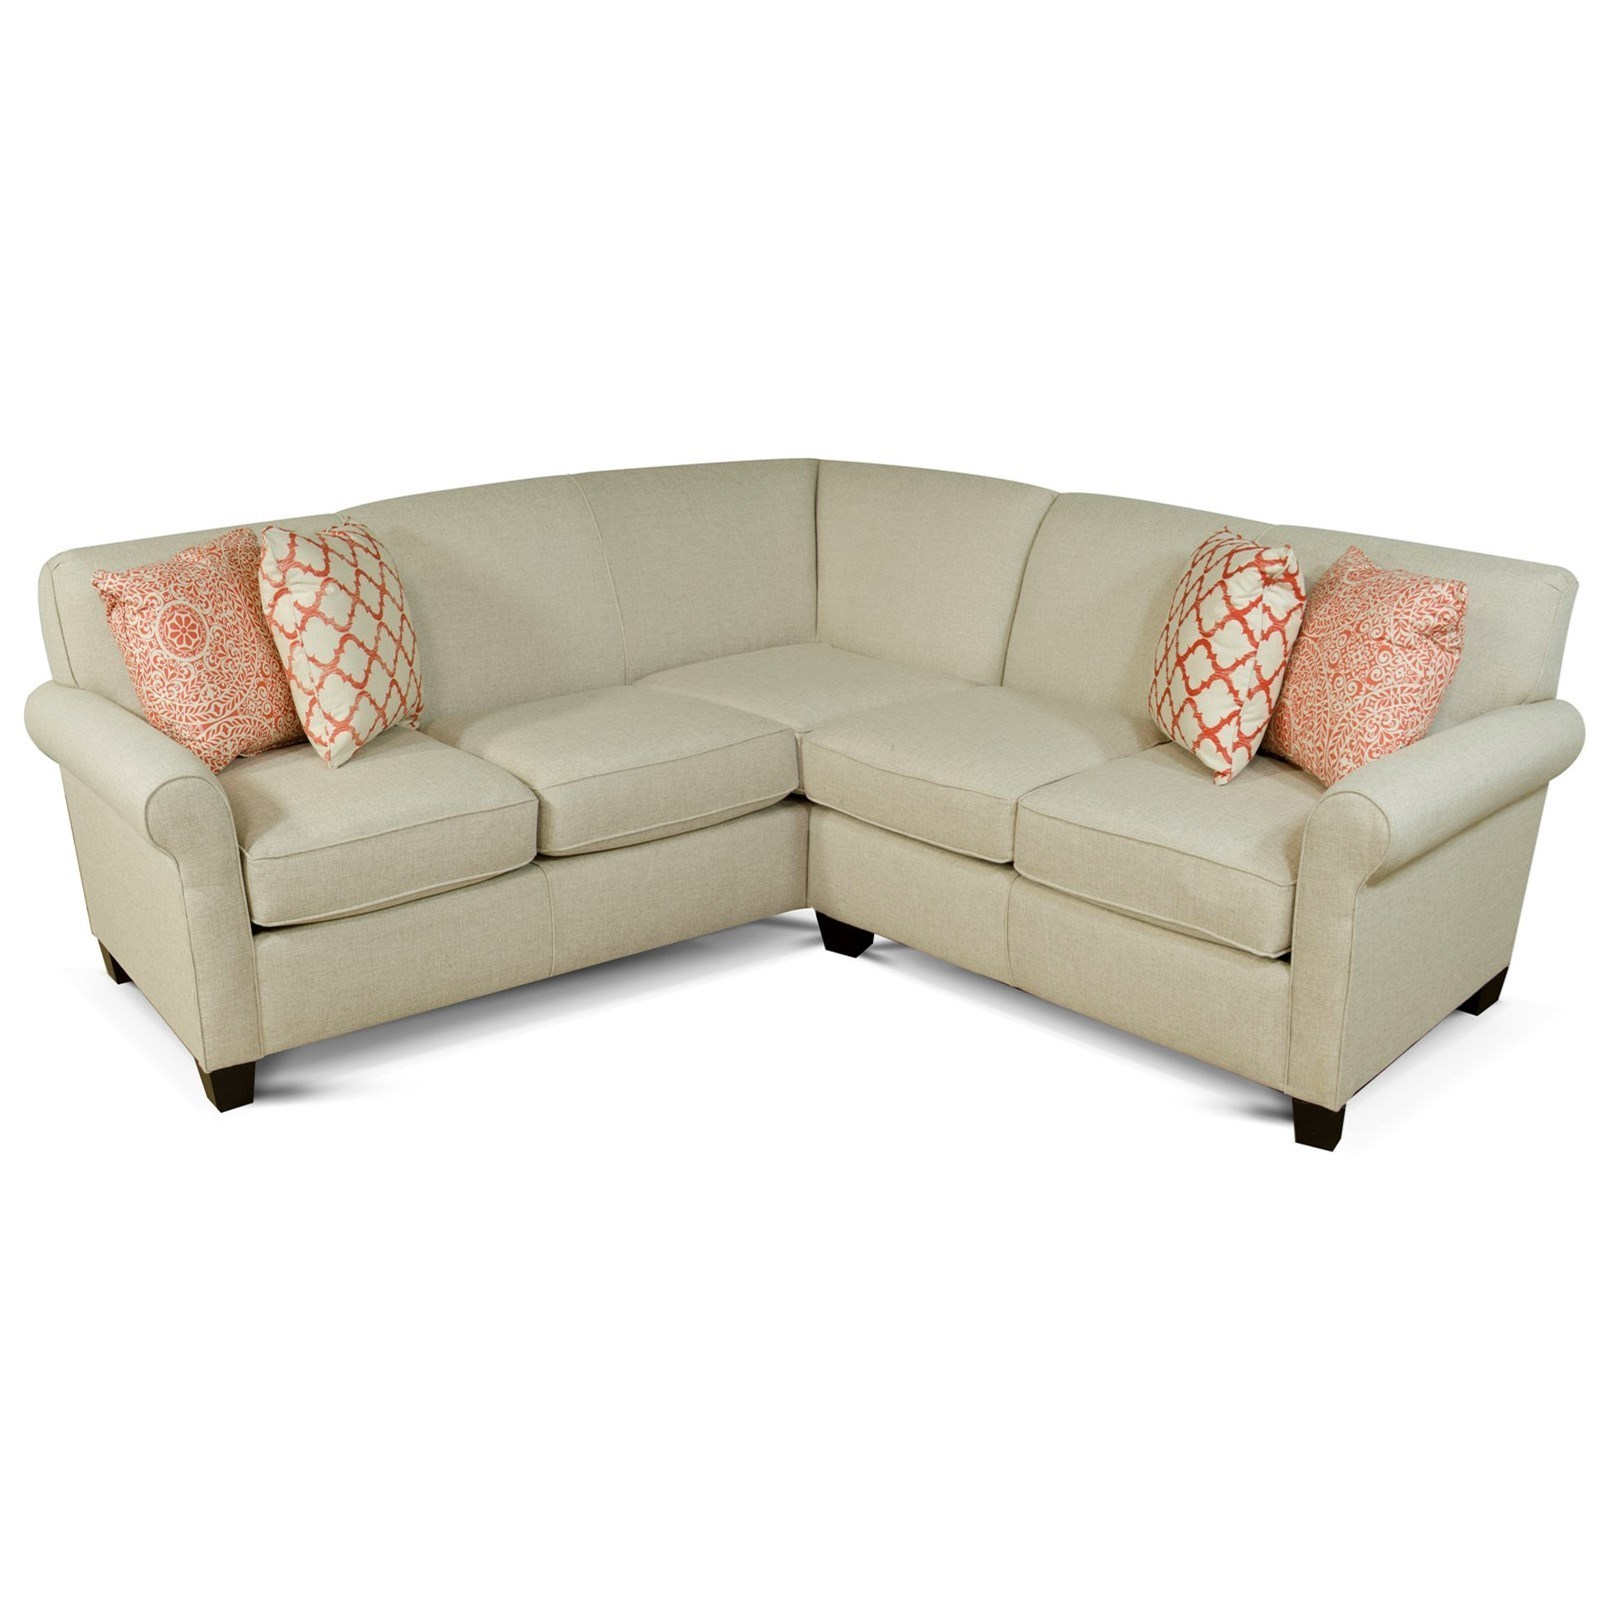 England Angie Small Corner Sectional Sofa   Dunk & Bright Furniture   Sectional  Sofas